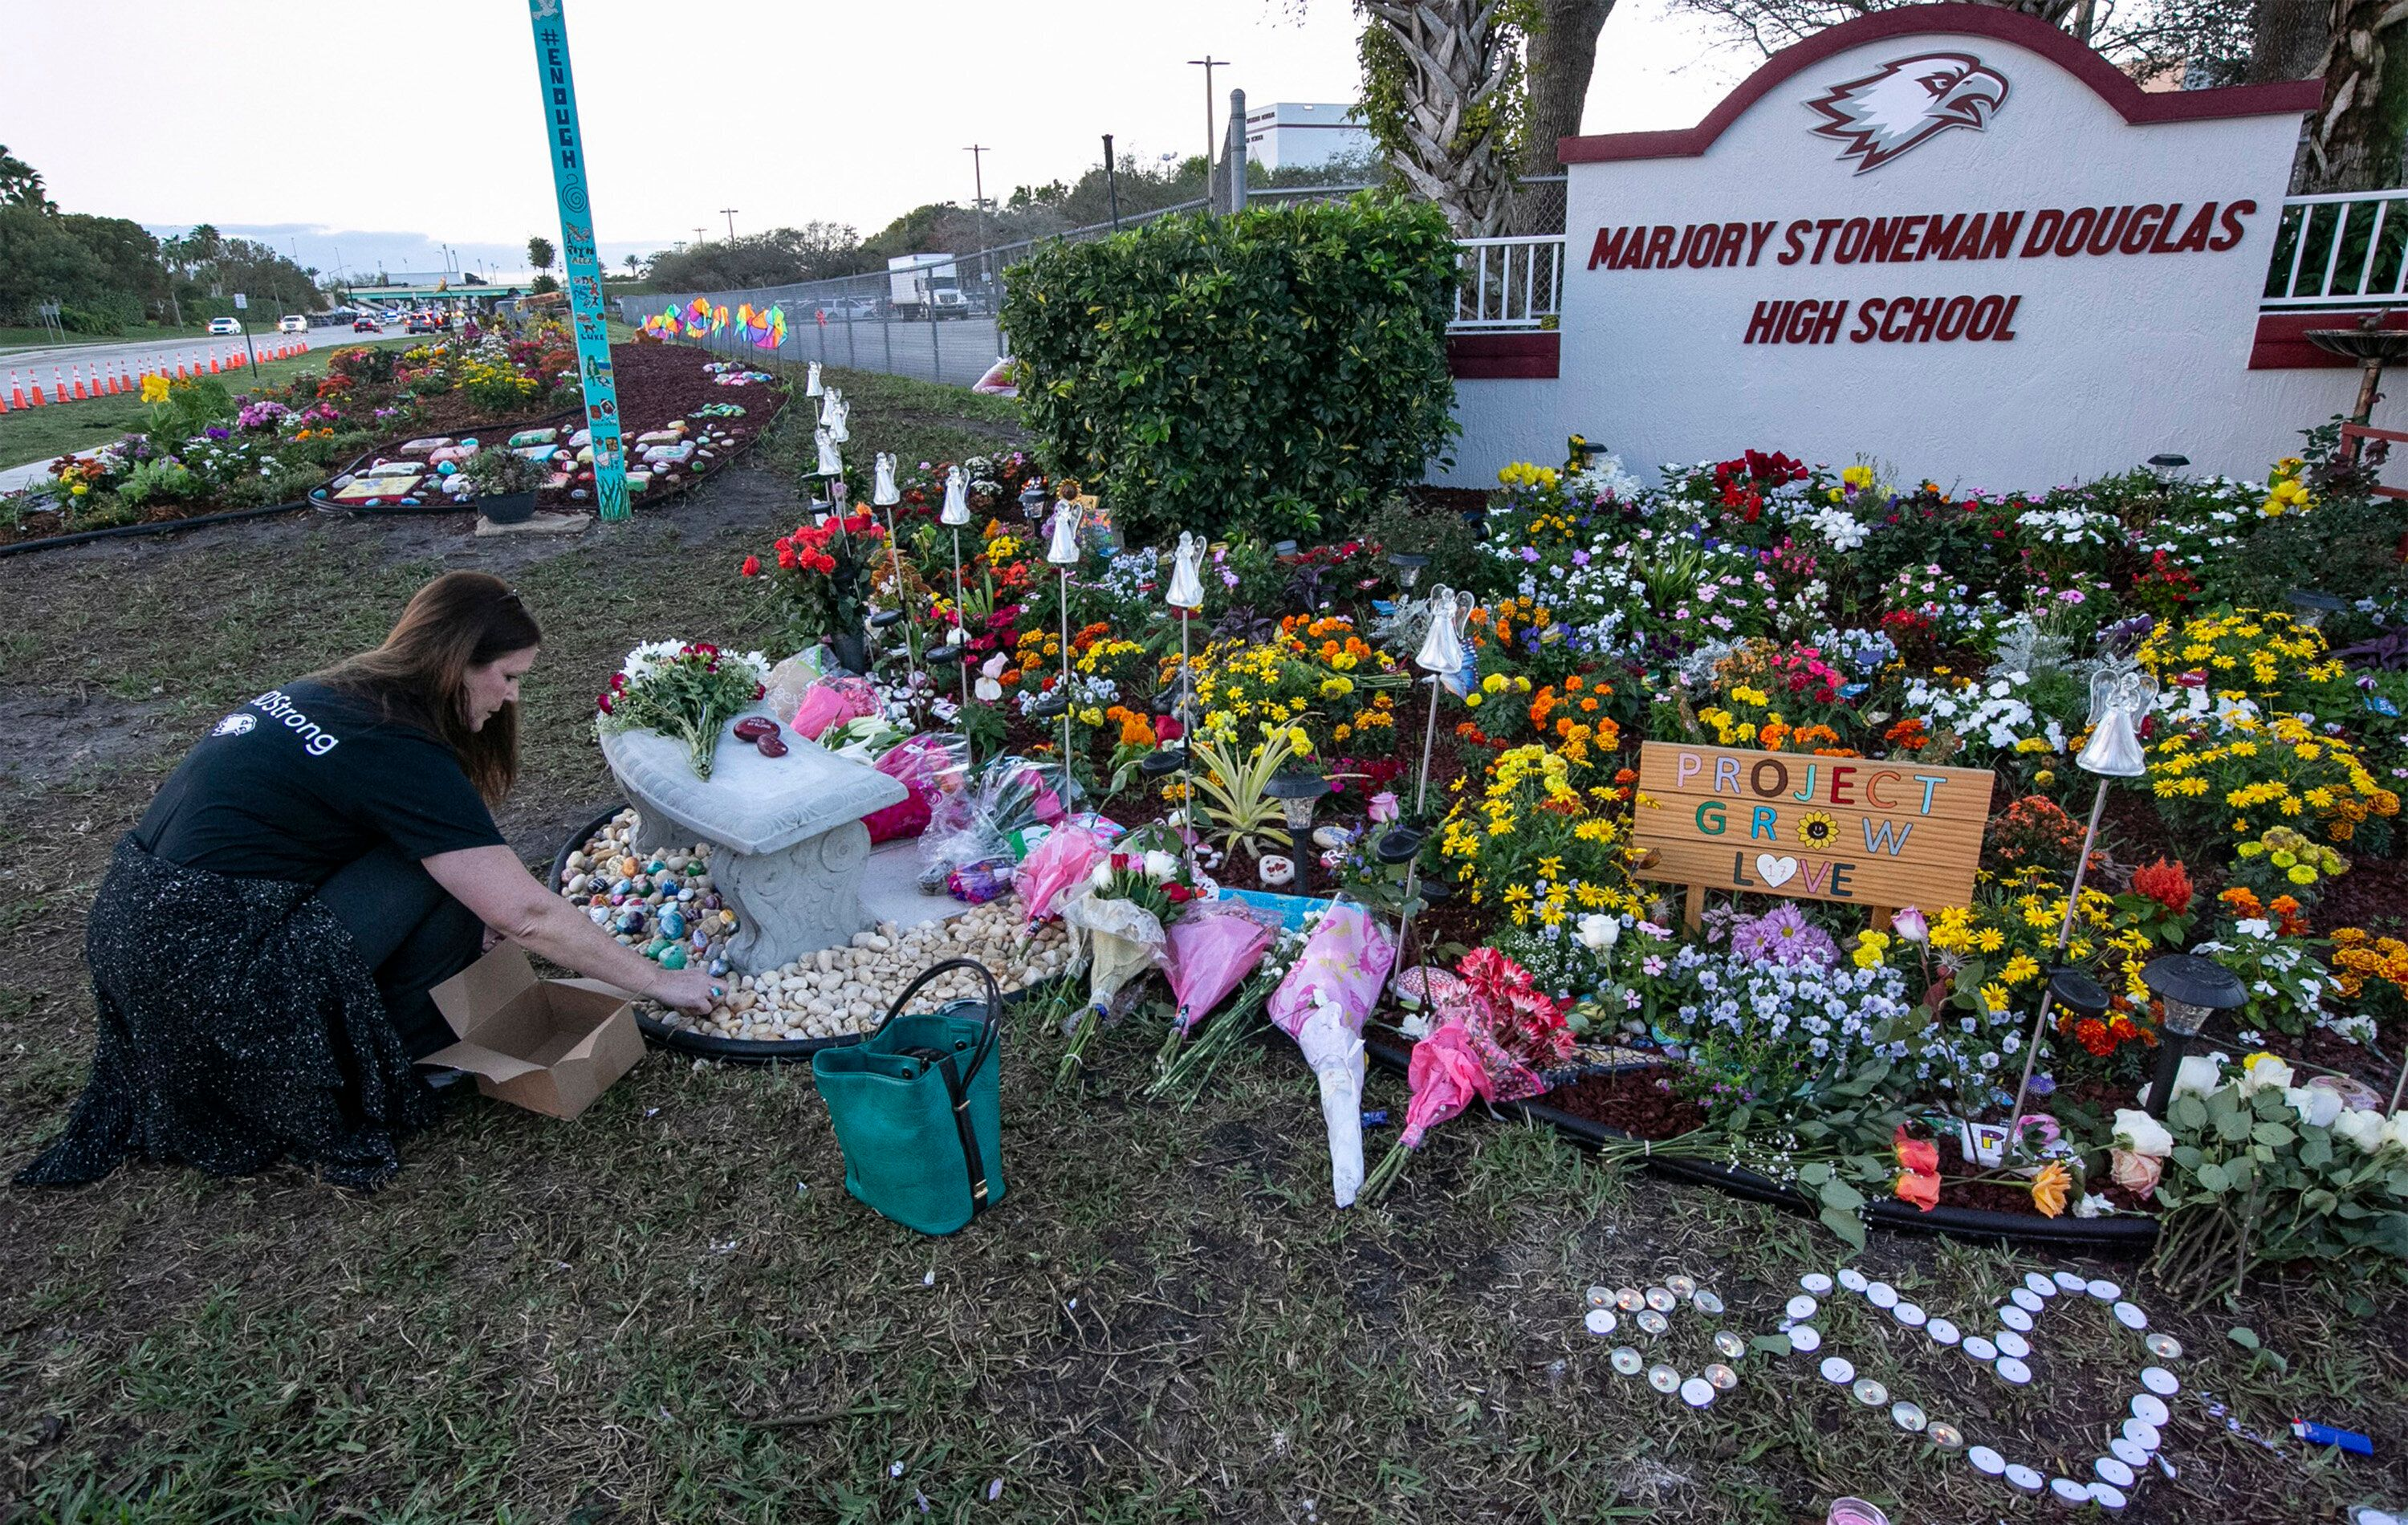 A memorial marking the first anniversary of the mass shooting at Marjory Stoneman Douglas High School in Parkland, Florida.